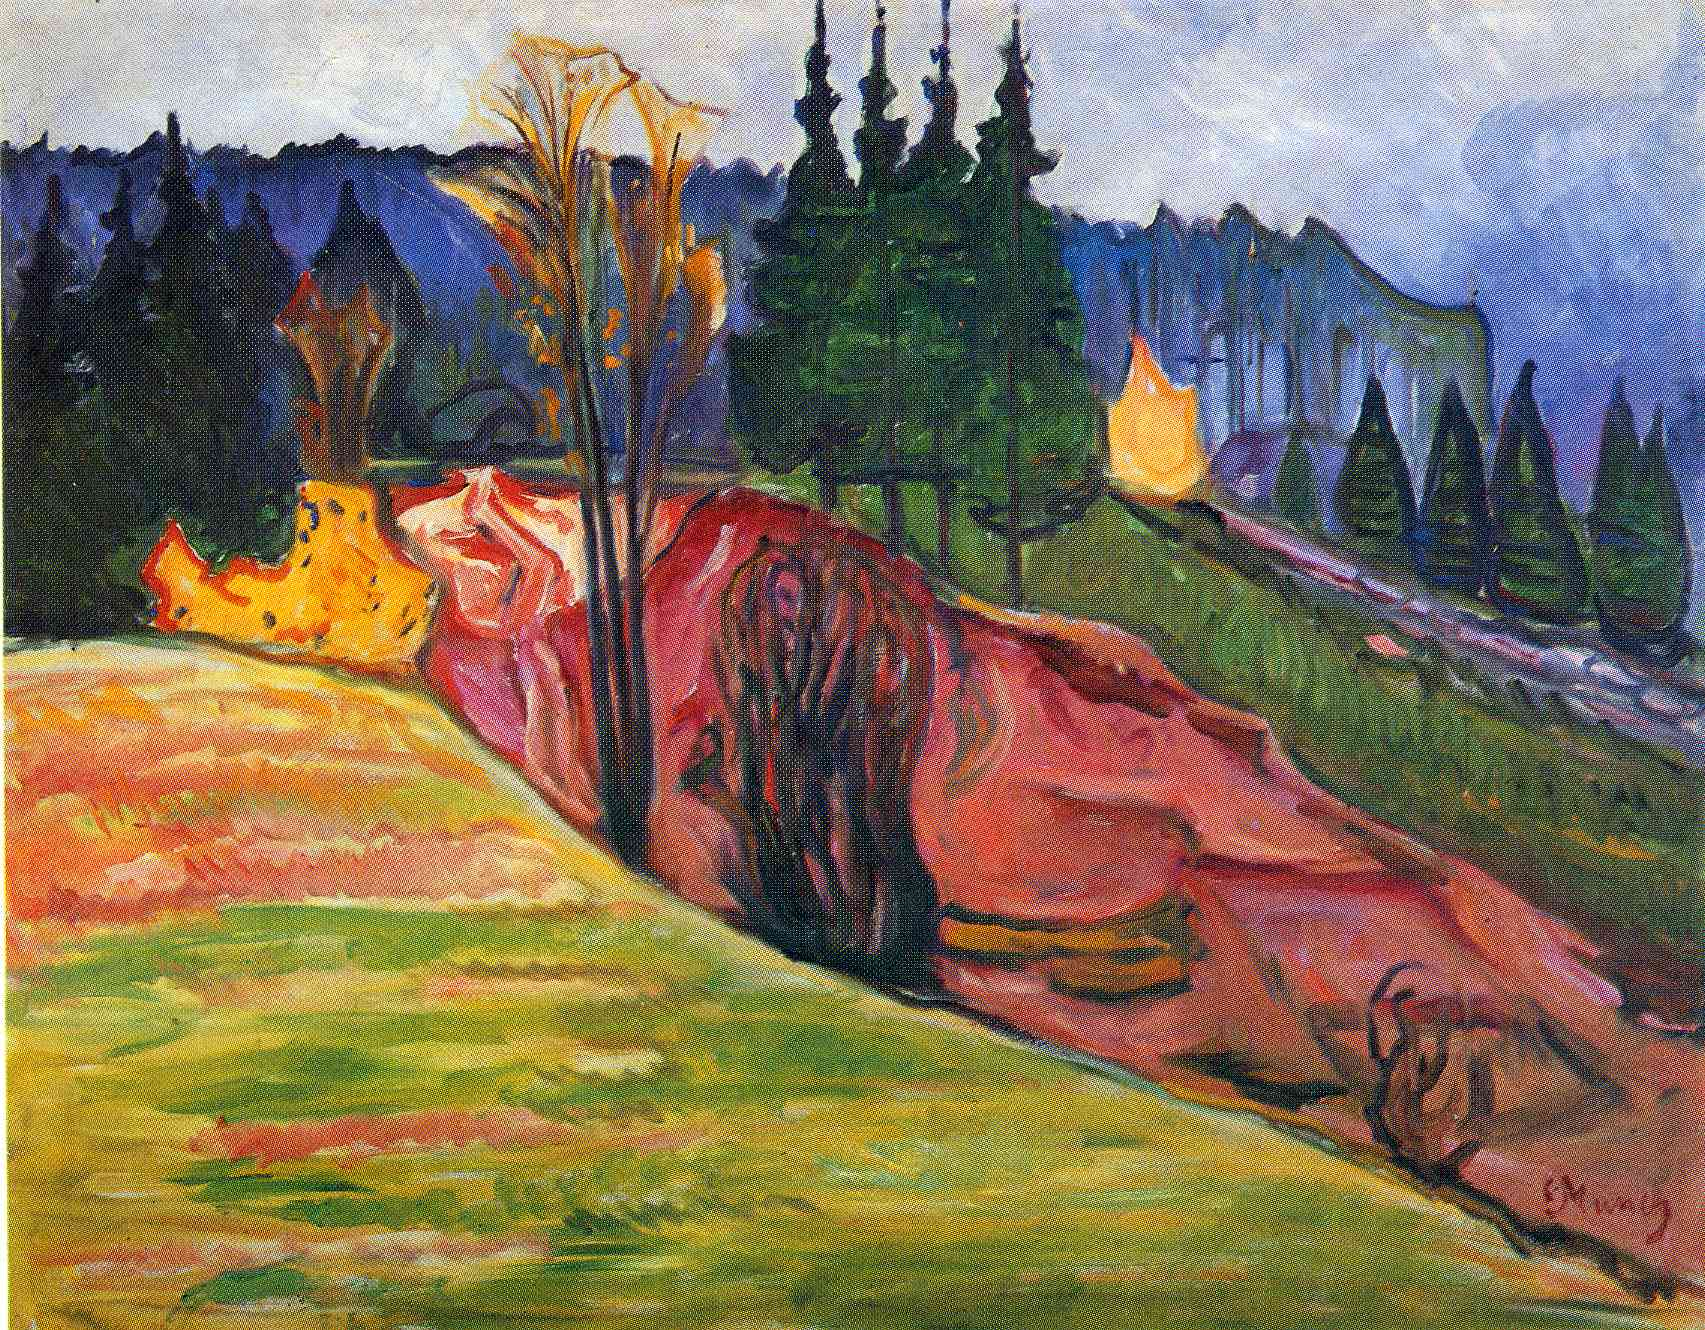 a biography of edward much an expressionist painter In 2012, edvard munch's painting the scream sold for more than $119   munch is widely known for his iconic pre-expressionist painting the.